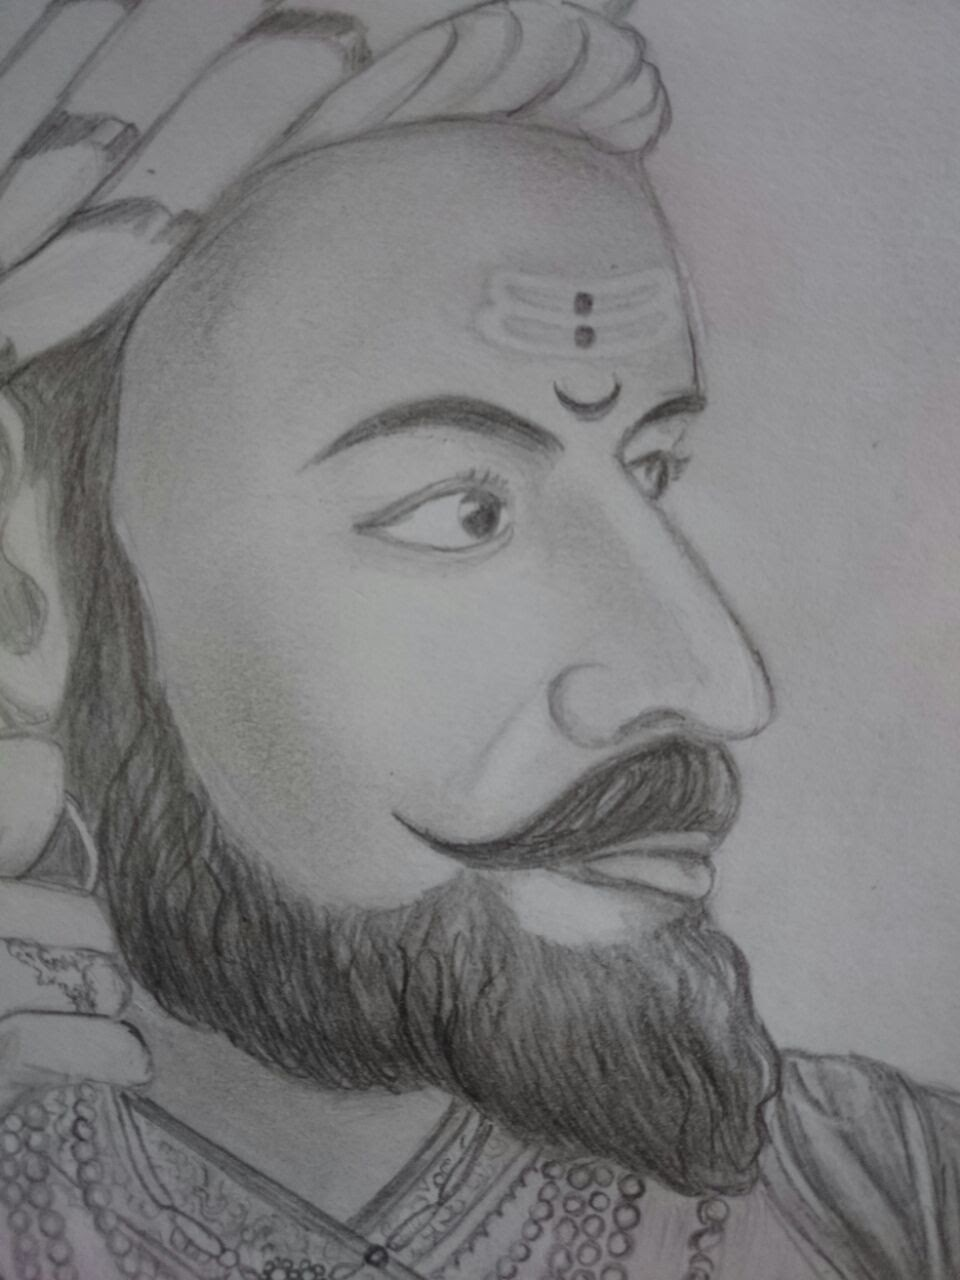 Pencil sketch of shivaji raje